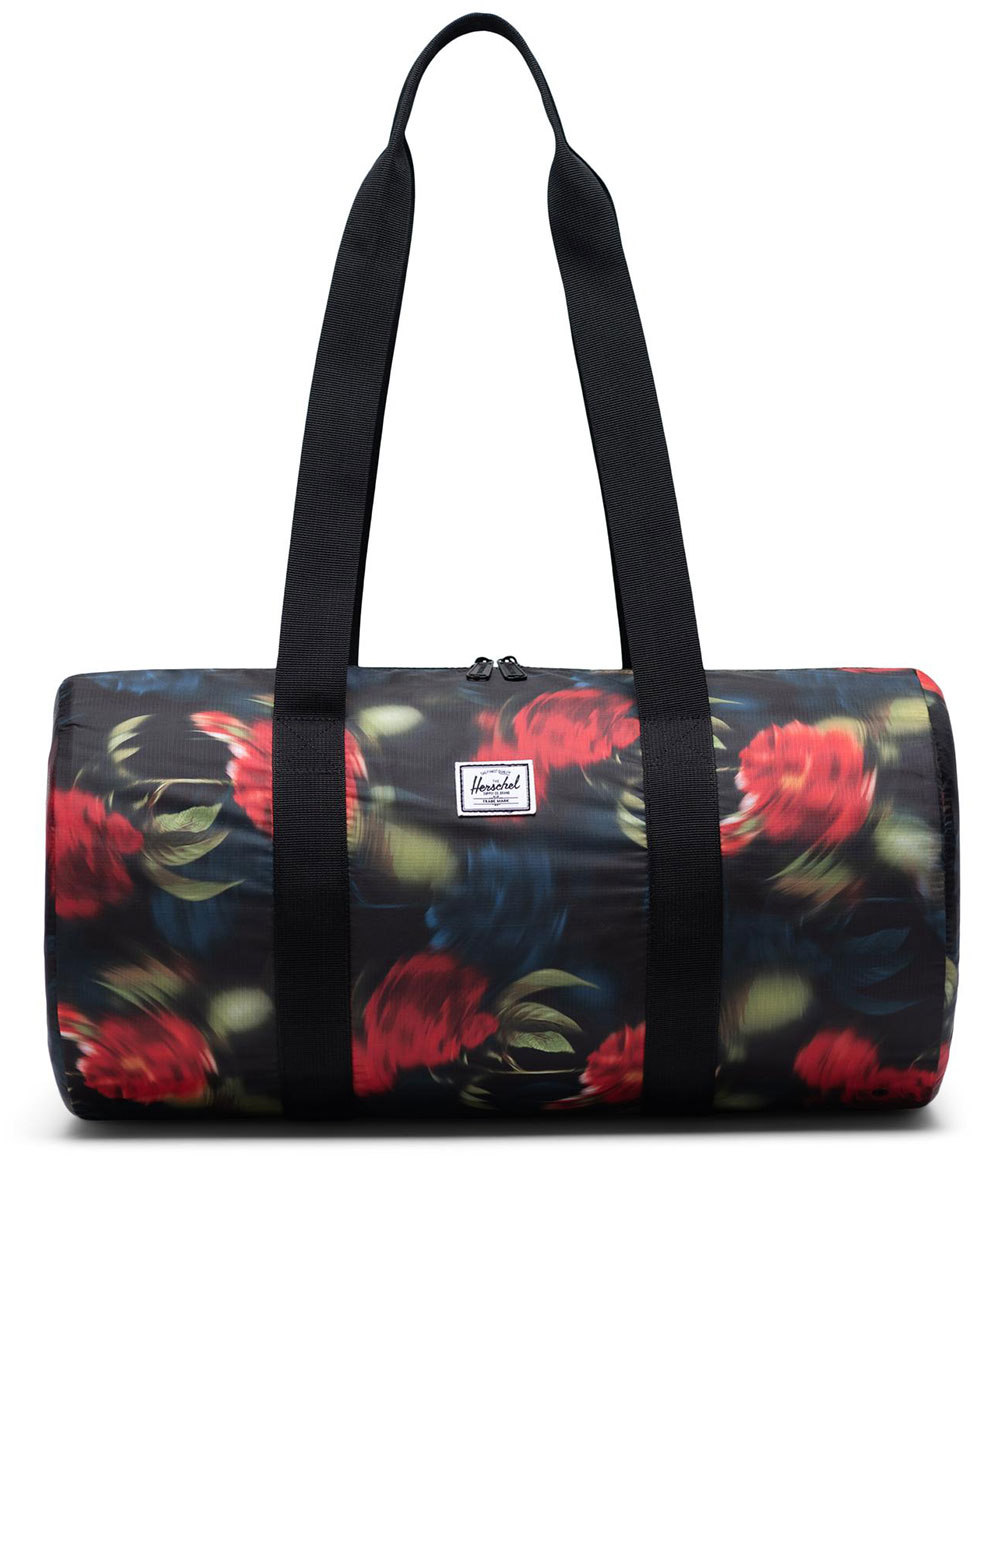 Packable Duffle Bag - Blurry Rose